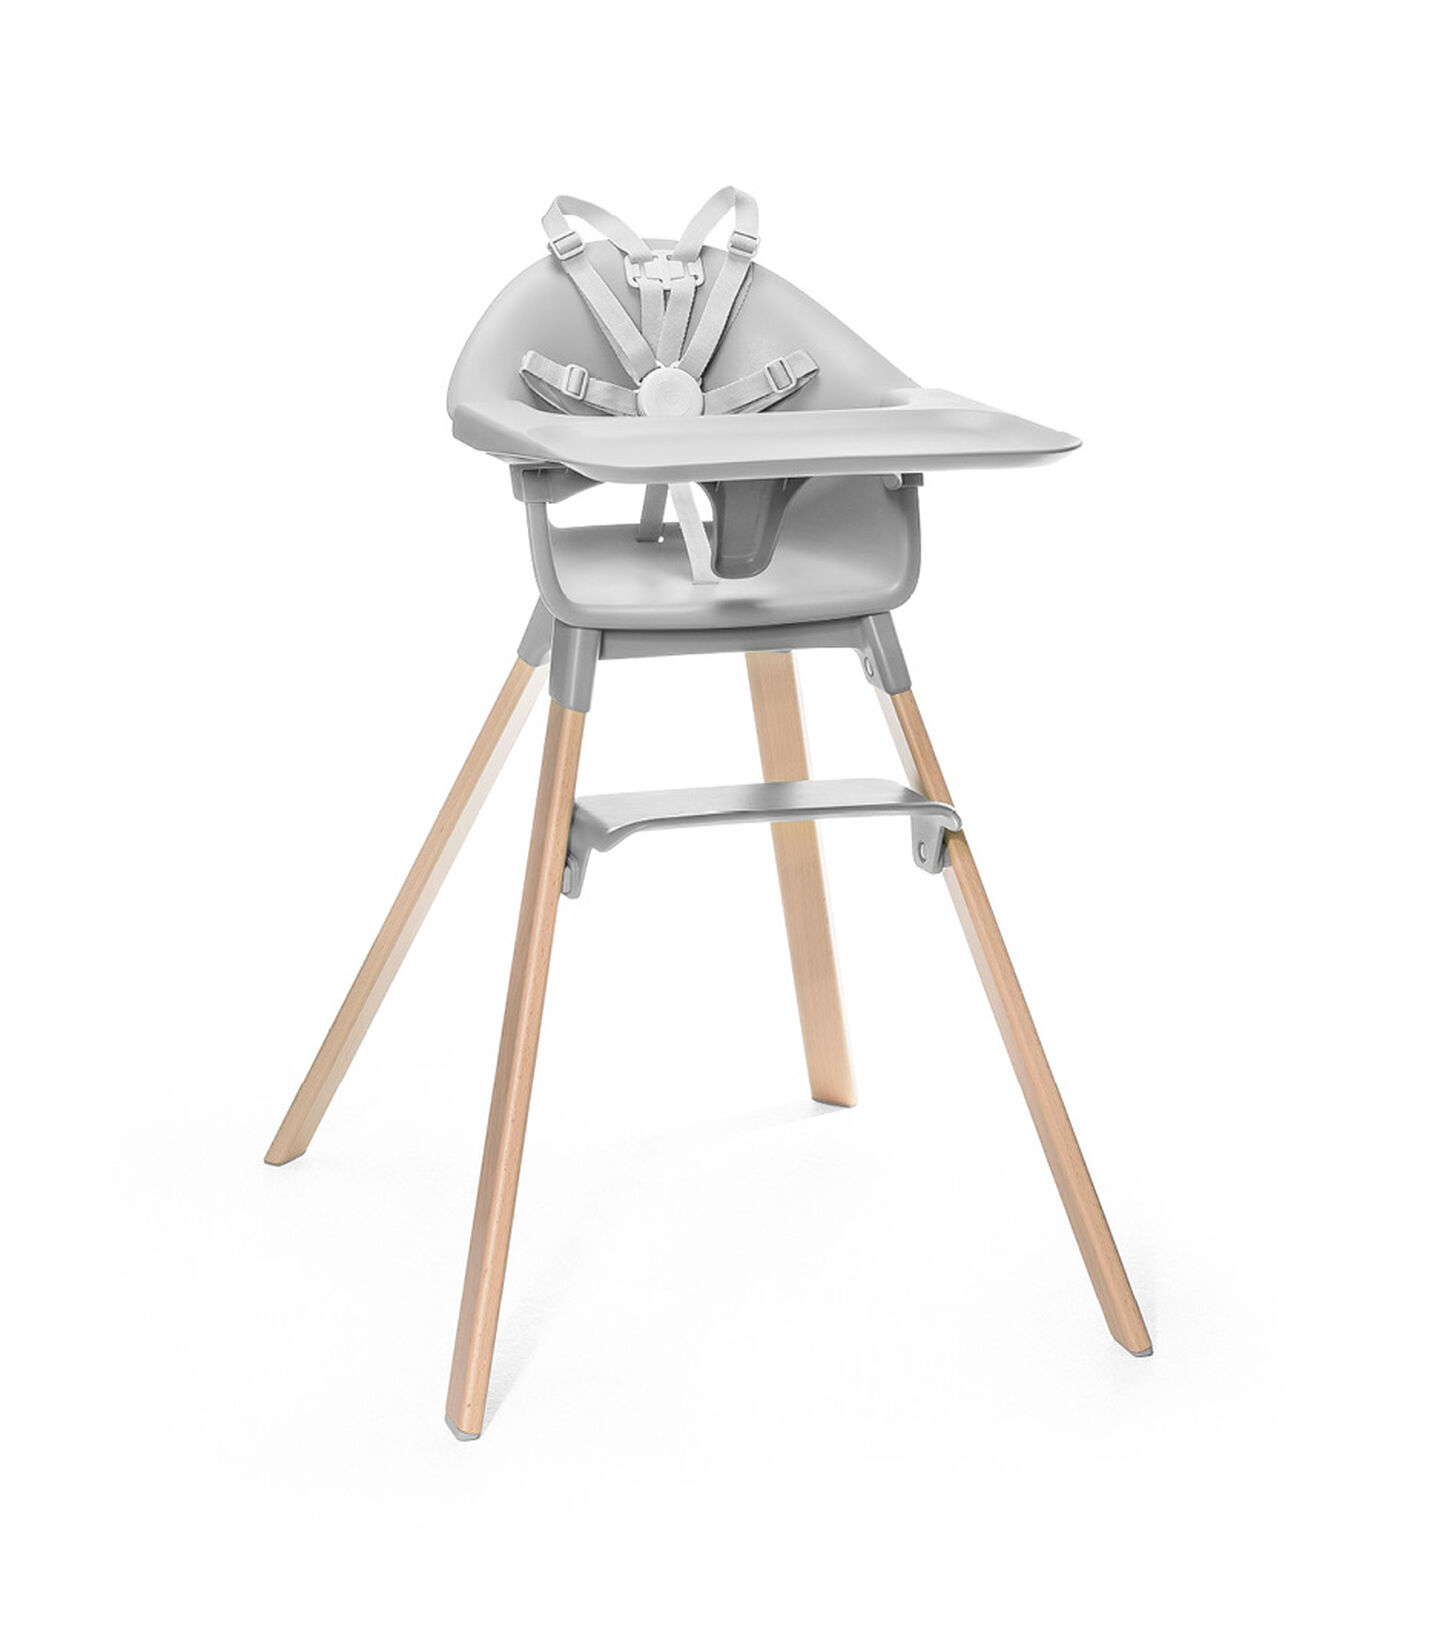 Stokke® Clikk™ High Chair. Natural Beech wood and Cloud Grey plastic parts. Stokke® Harness and Tray attached. view 2